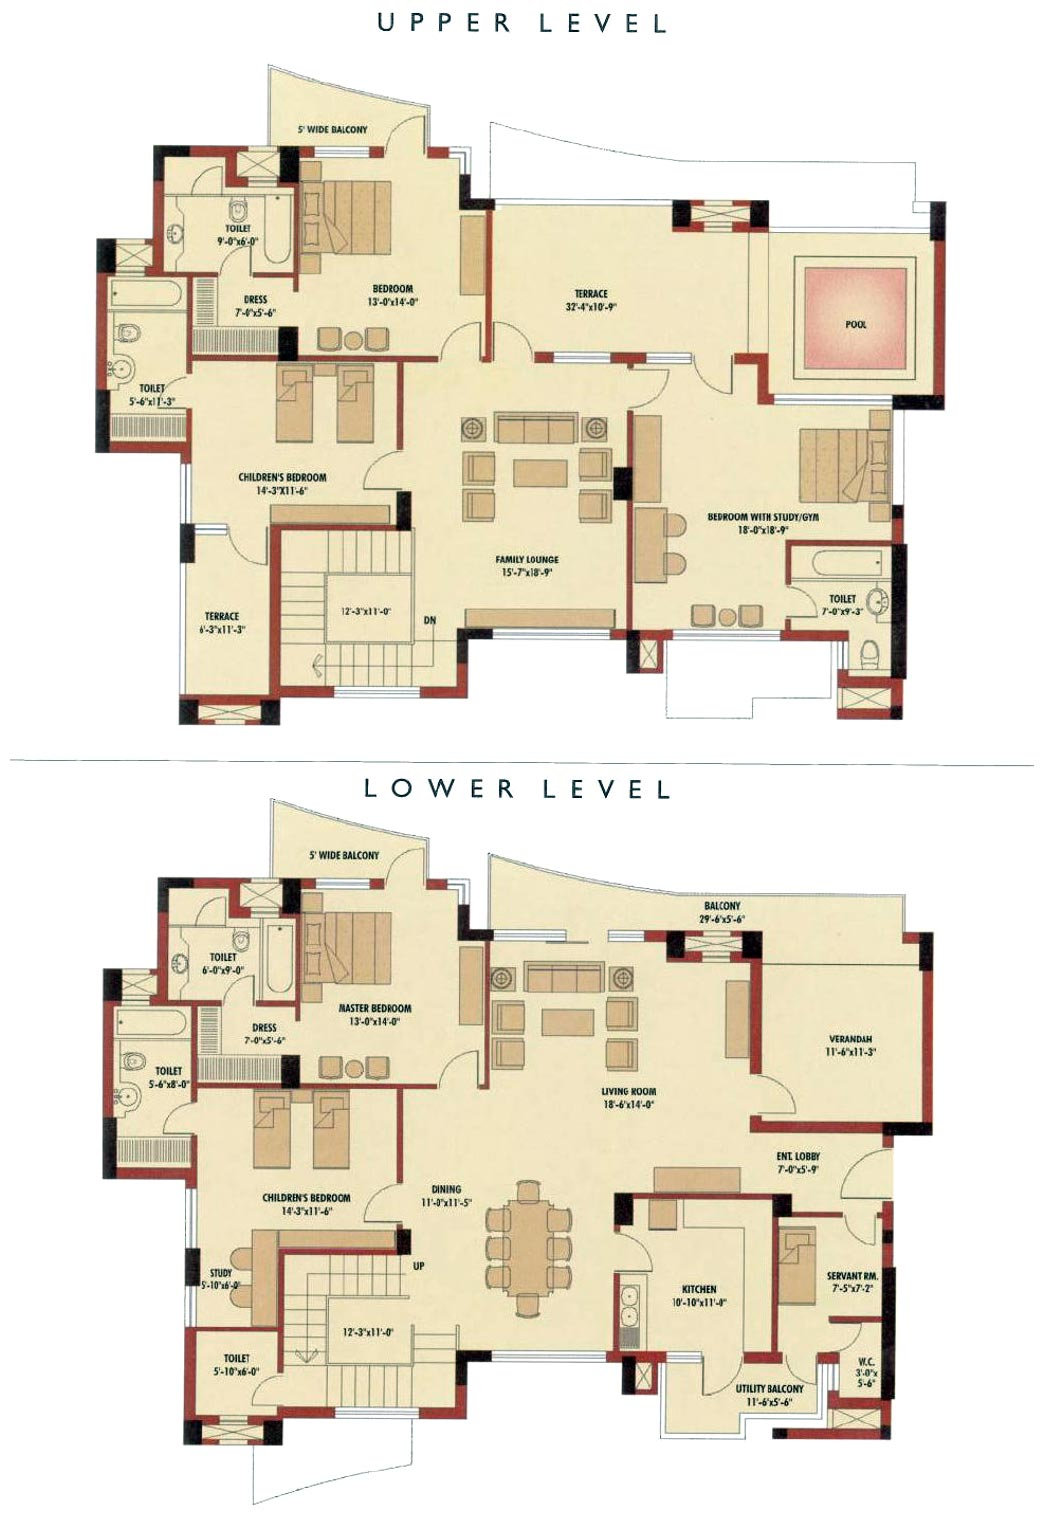 4 bedroom duplex floor garage plan floor plans for 4 bedroom duplex floor plans